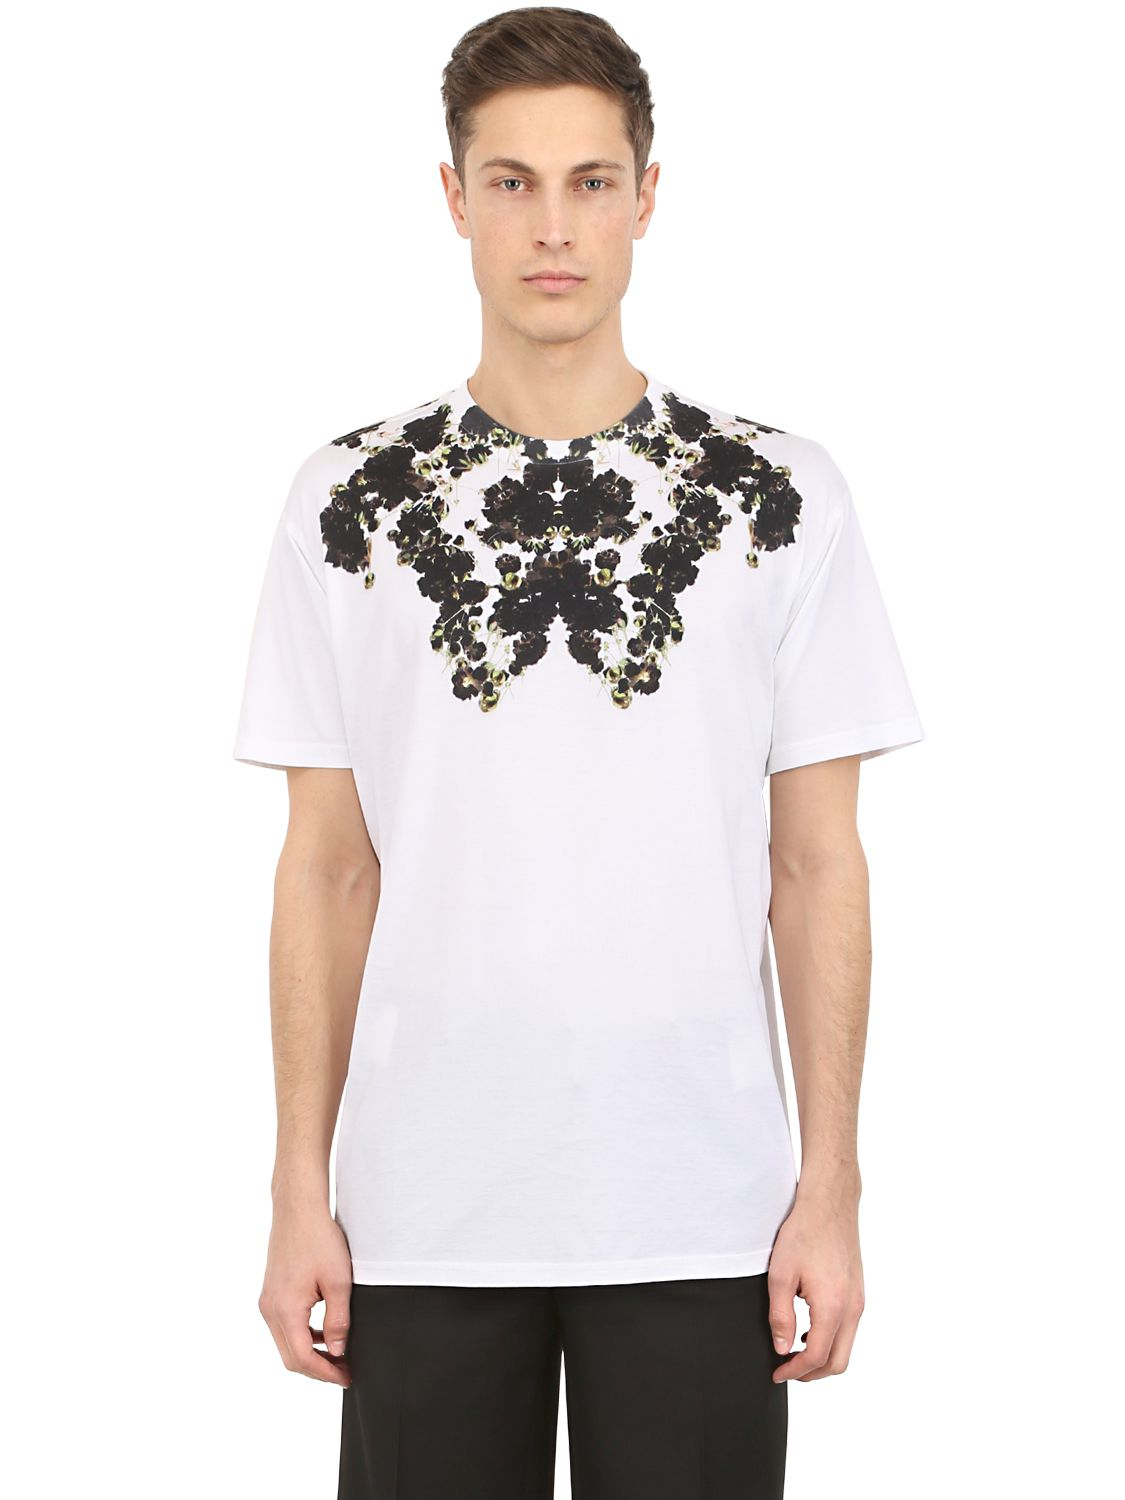 Givenchy floral print t shirt in white for men lyst for Givenchy t shirt man